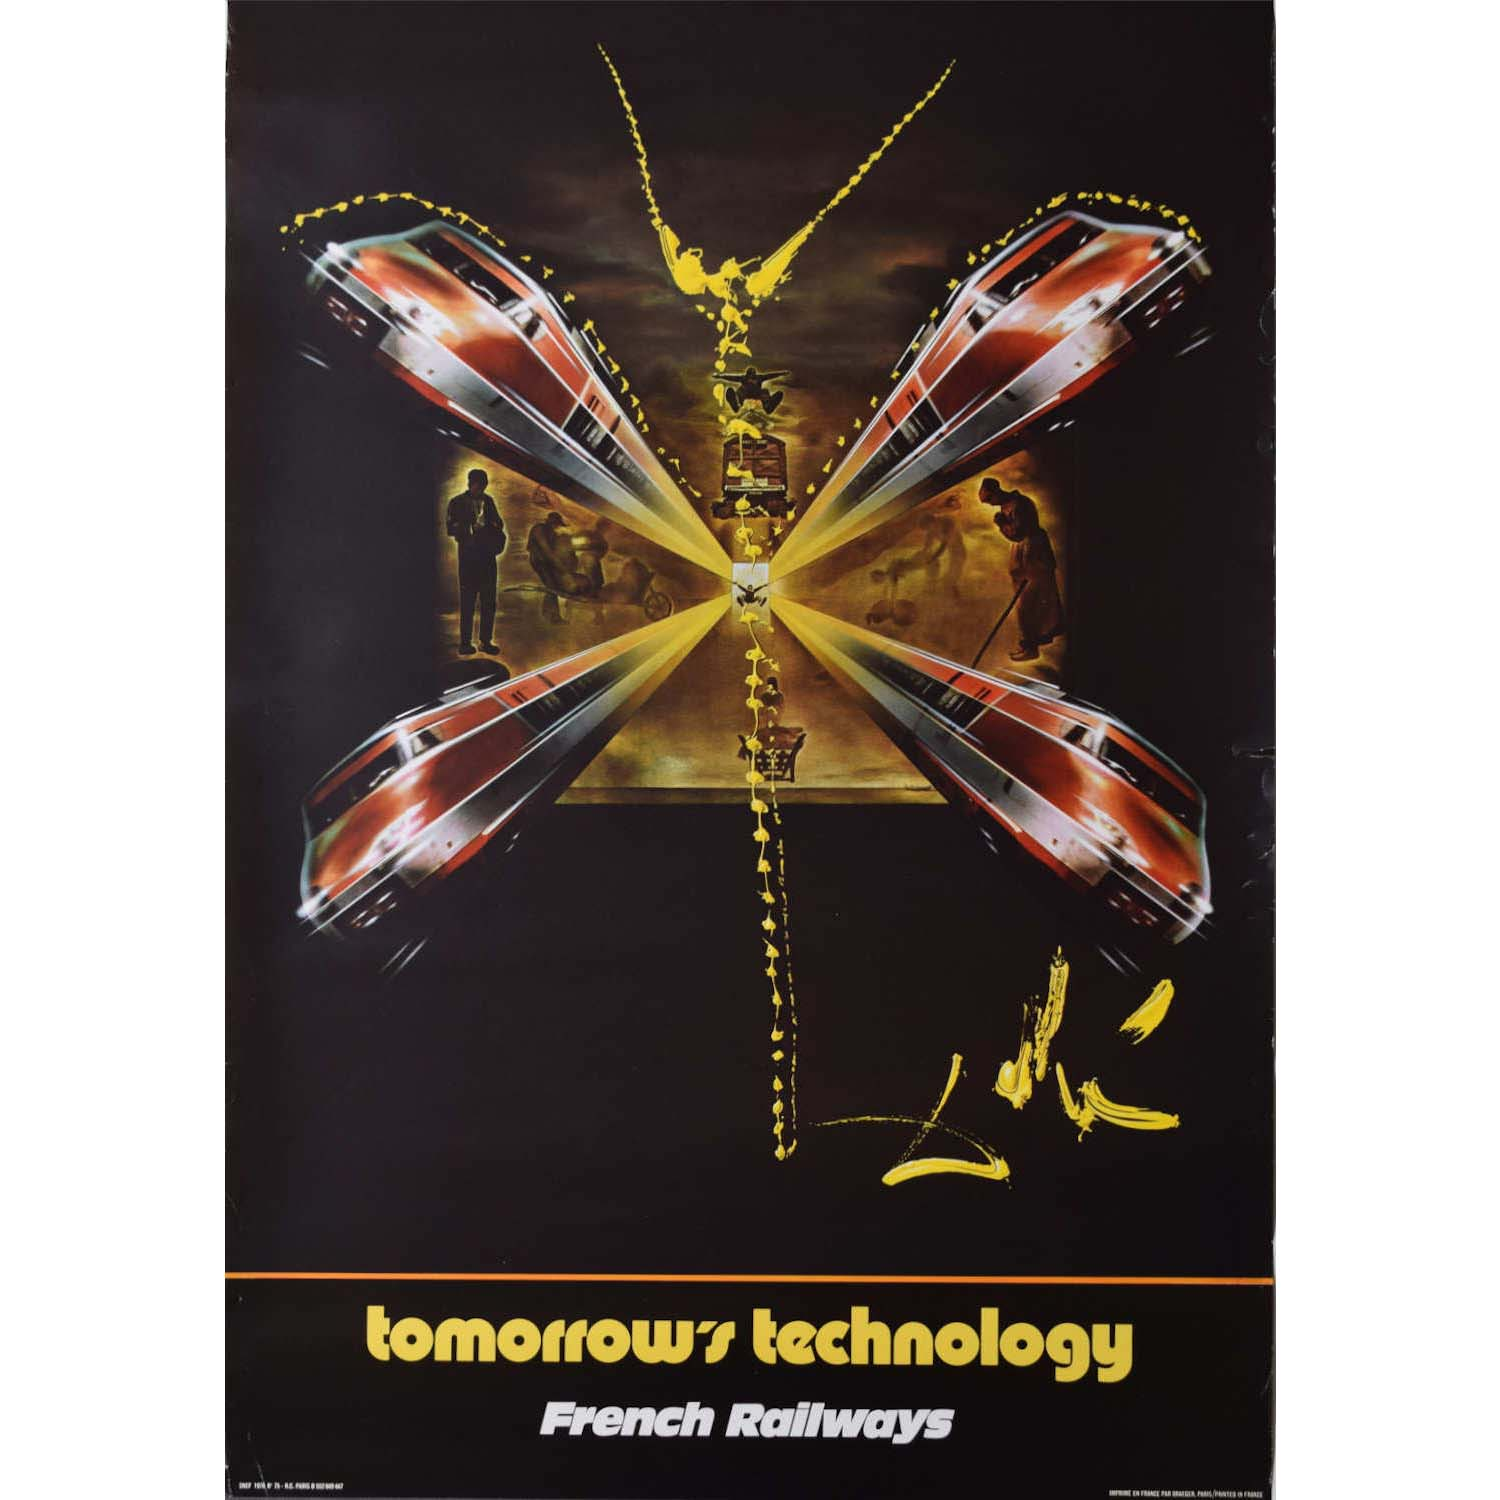 Salvador Dali 1976 SNCF Poster French Railways Tomorrow's Technology